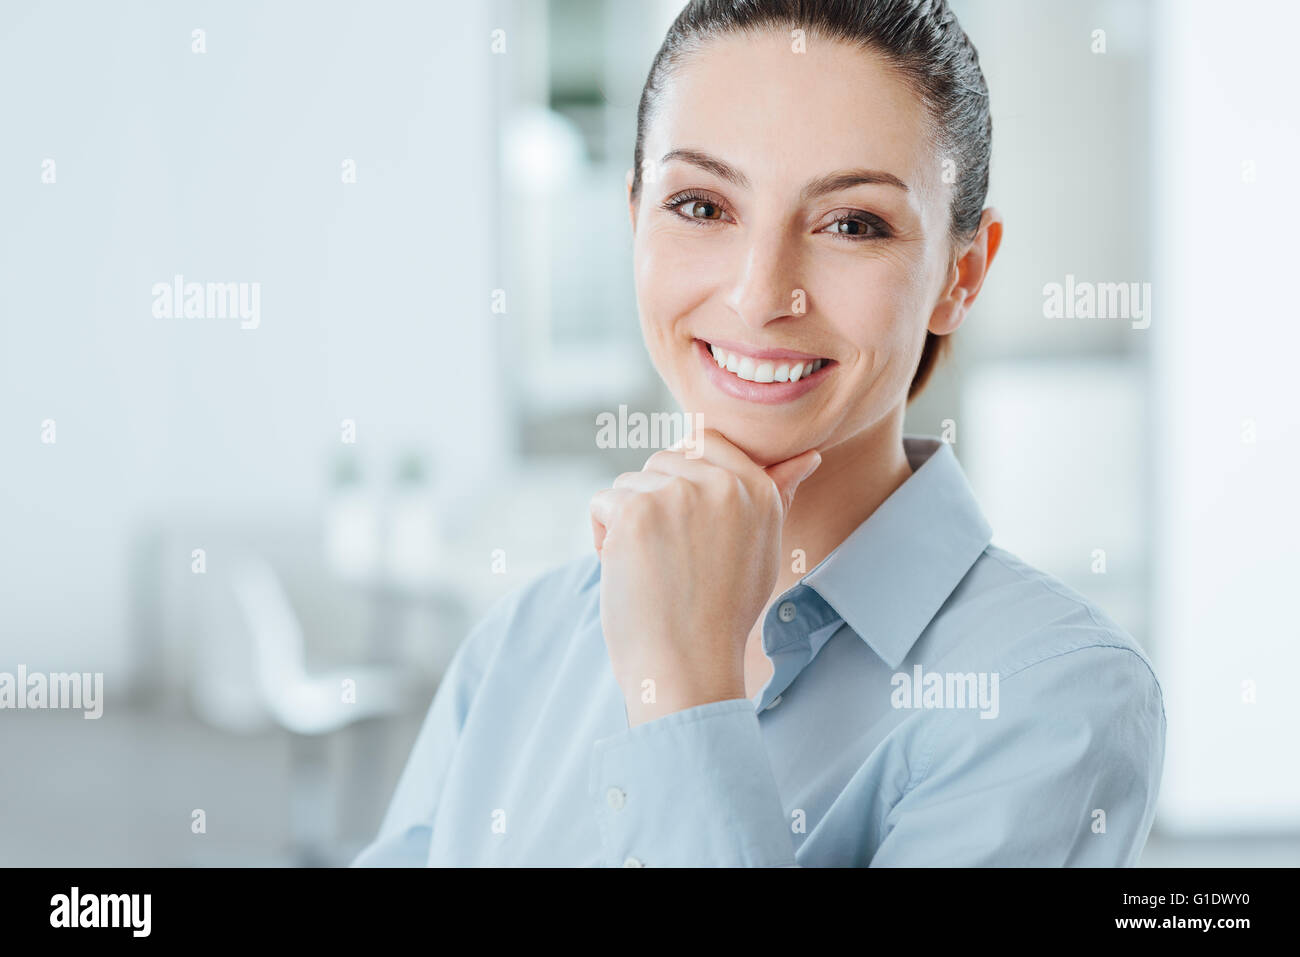 Pretty young woman posing with hand on chin and smiling at camera, room interior on background - Stock Image